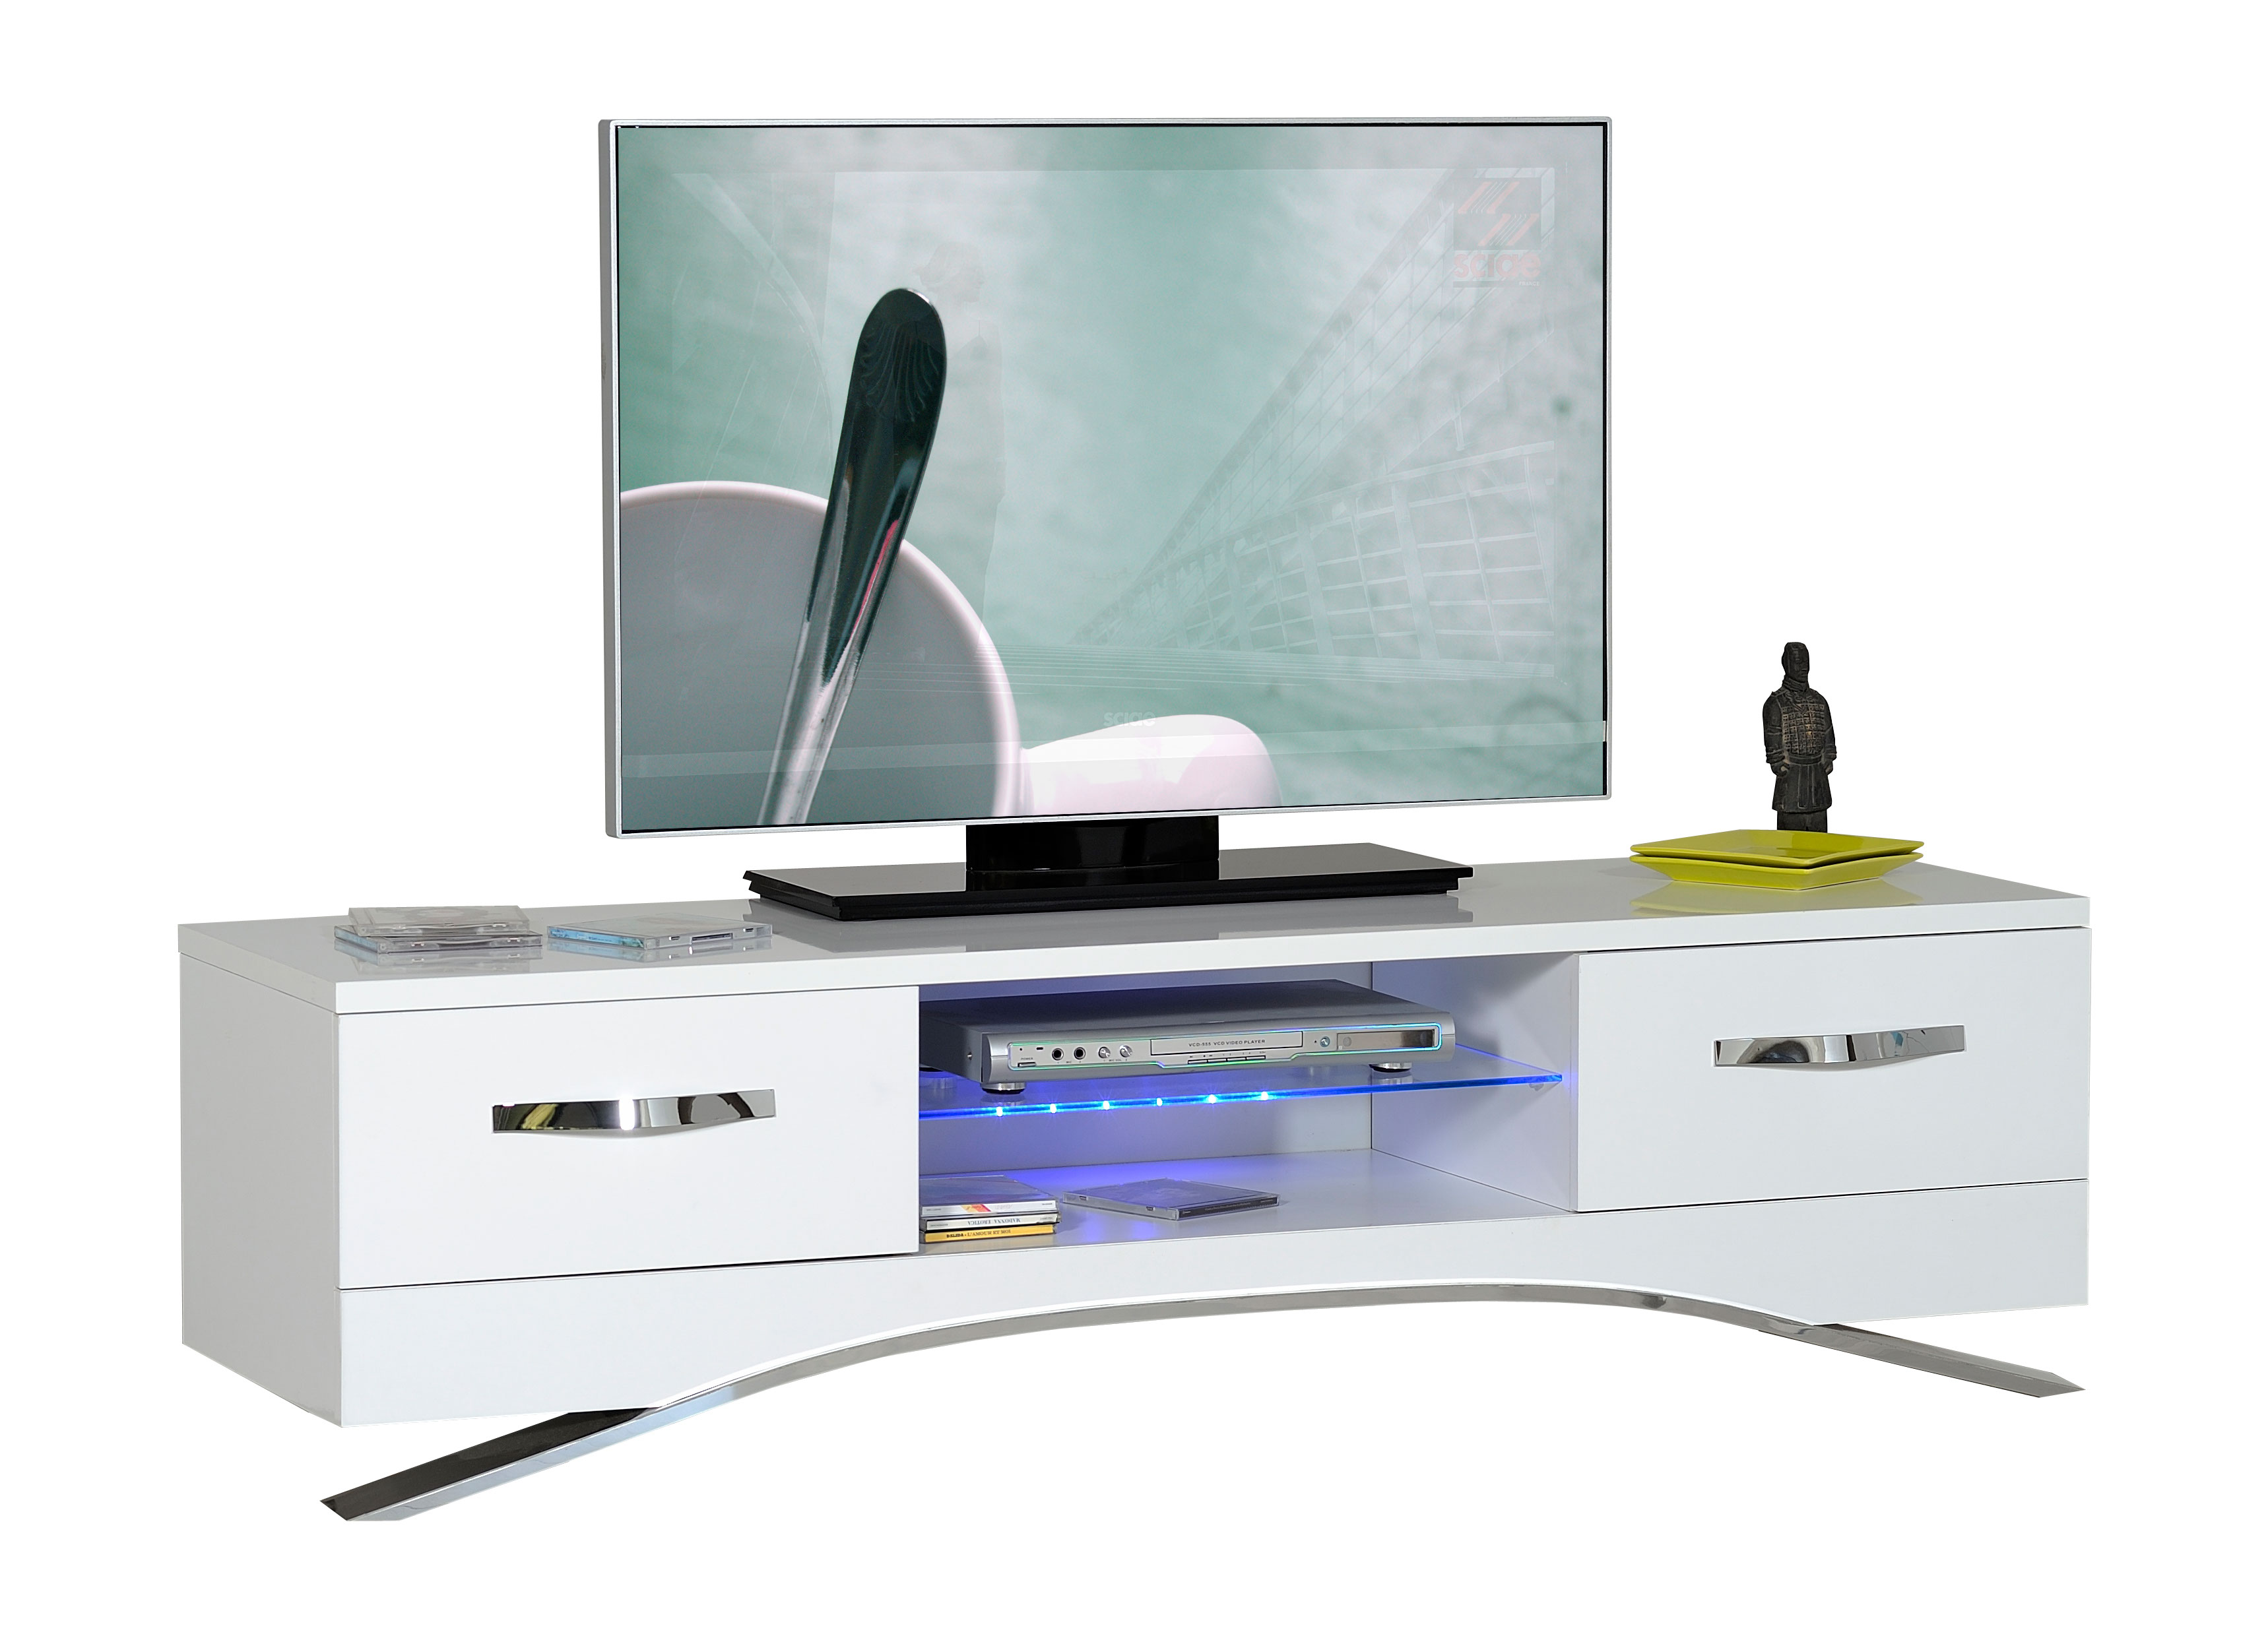 design tv hifi ablage unterschrank lowboard mod sc034 weiss hochglanz lack ebay. Black Bedroom Furniture Sets. Home Design Ideas